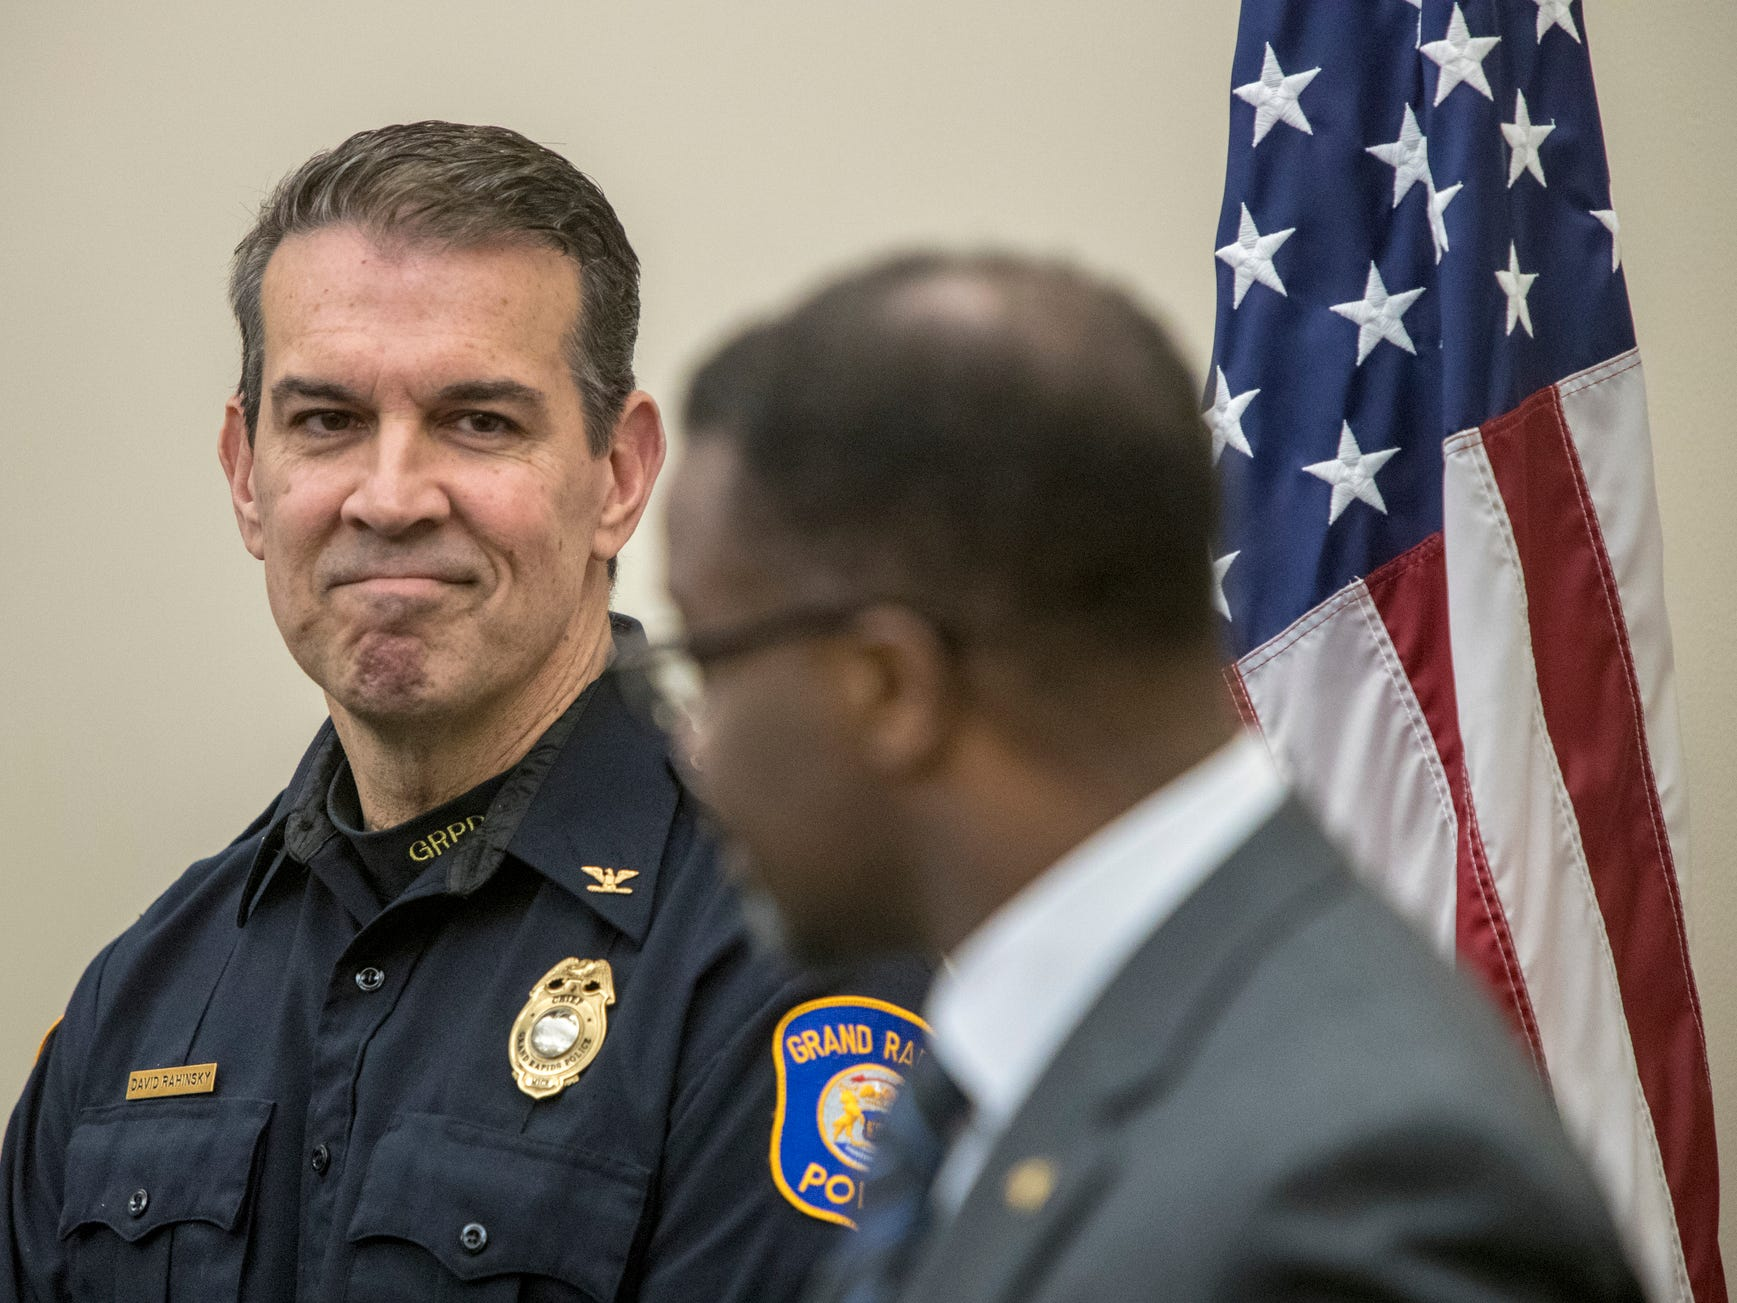 City Manager Mark Washington talks about the Grand Rapids Police Department's achievements under the leadership of Chief David Rahinsky, left, during a press conference announcing Rahinsky's retirement on Thursday, Dec. 6, 2018. Rahinsky, who took the reigns in July 2014, plans for his last day in office to be Tuesday, Dec. 18.